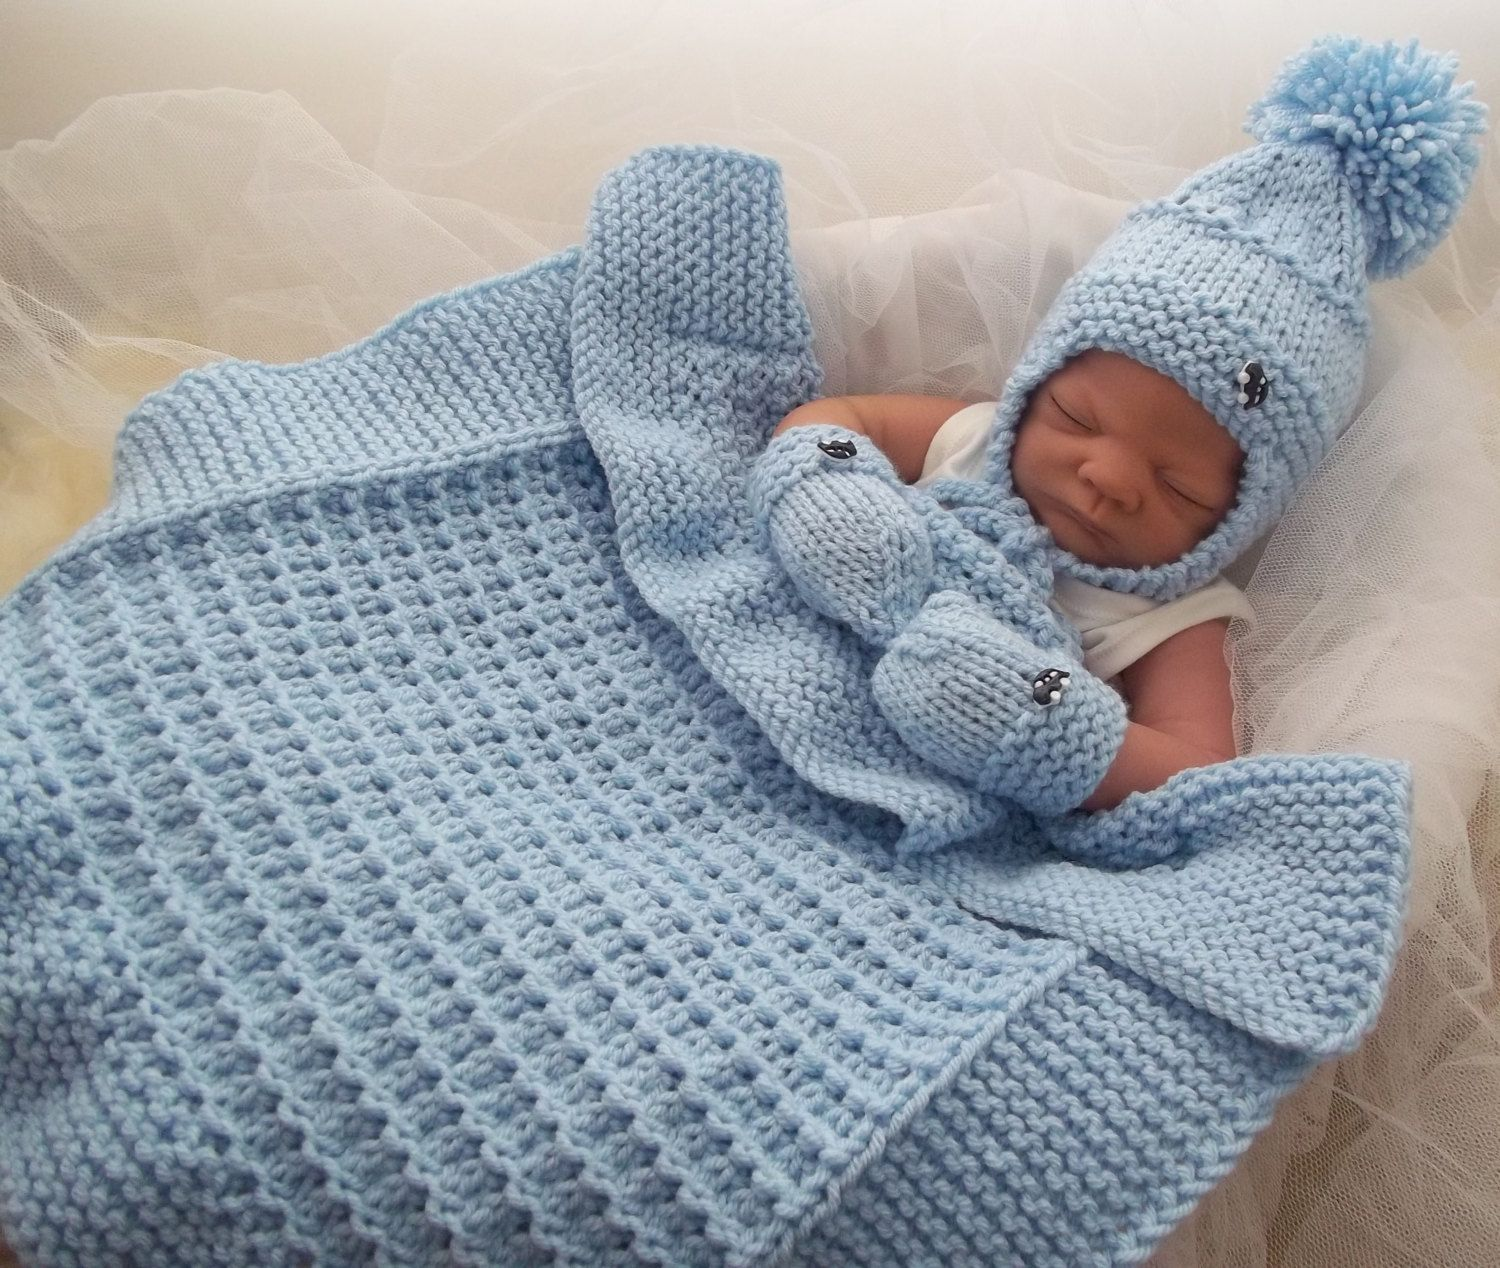 Knitting Pattern For Baby Hat And Mittens : Baby Knitting Pattern Chunky Baby Pram Blanket Hat & Mittens - Easy Knit ...